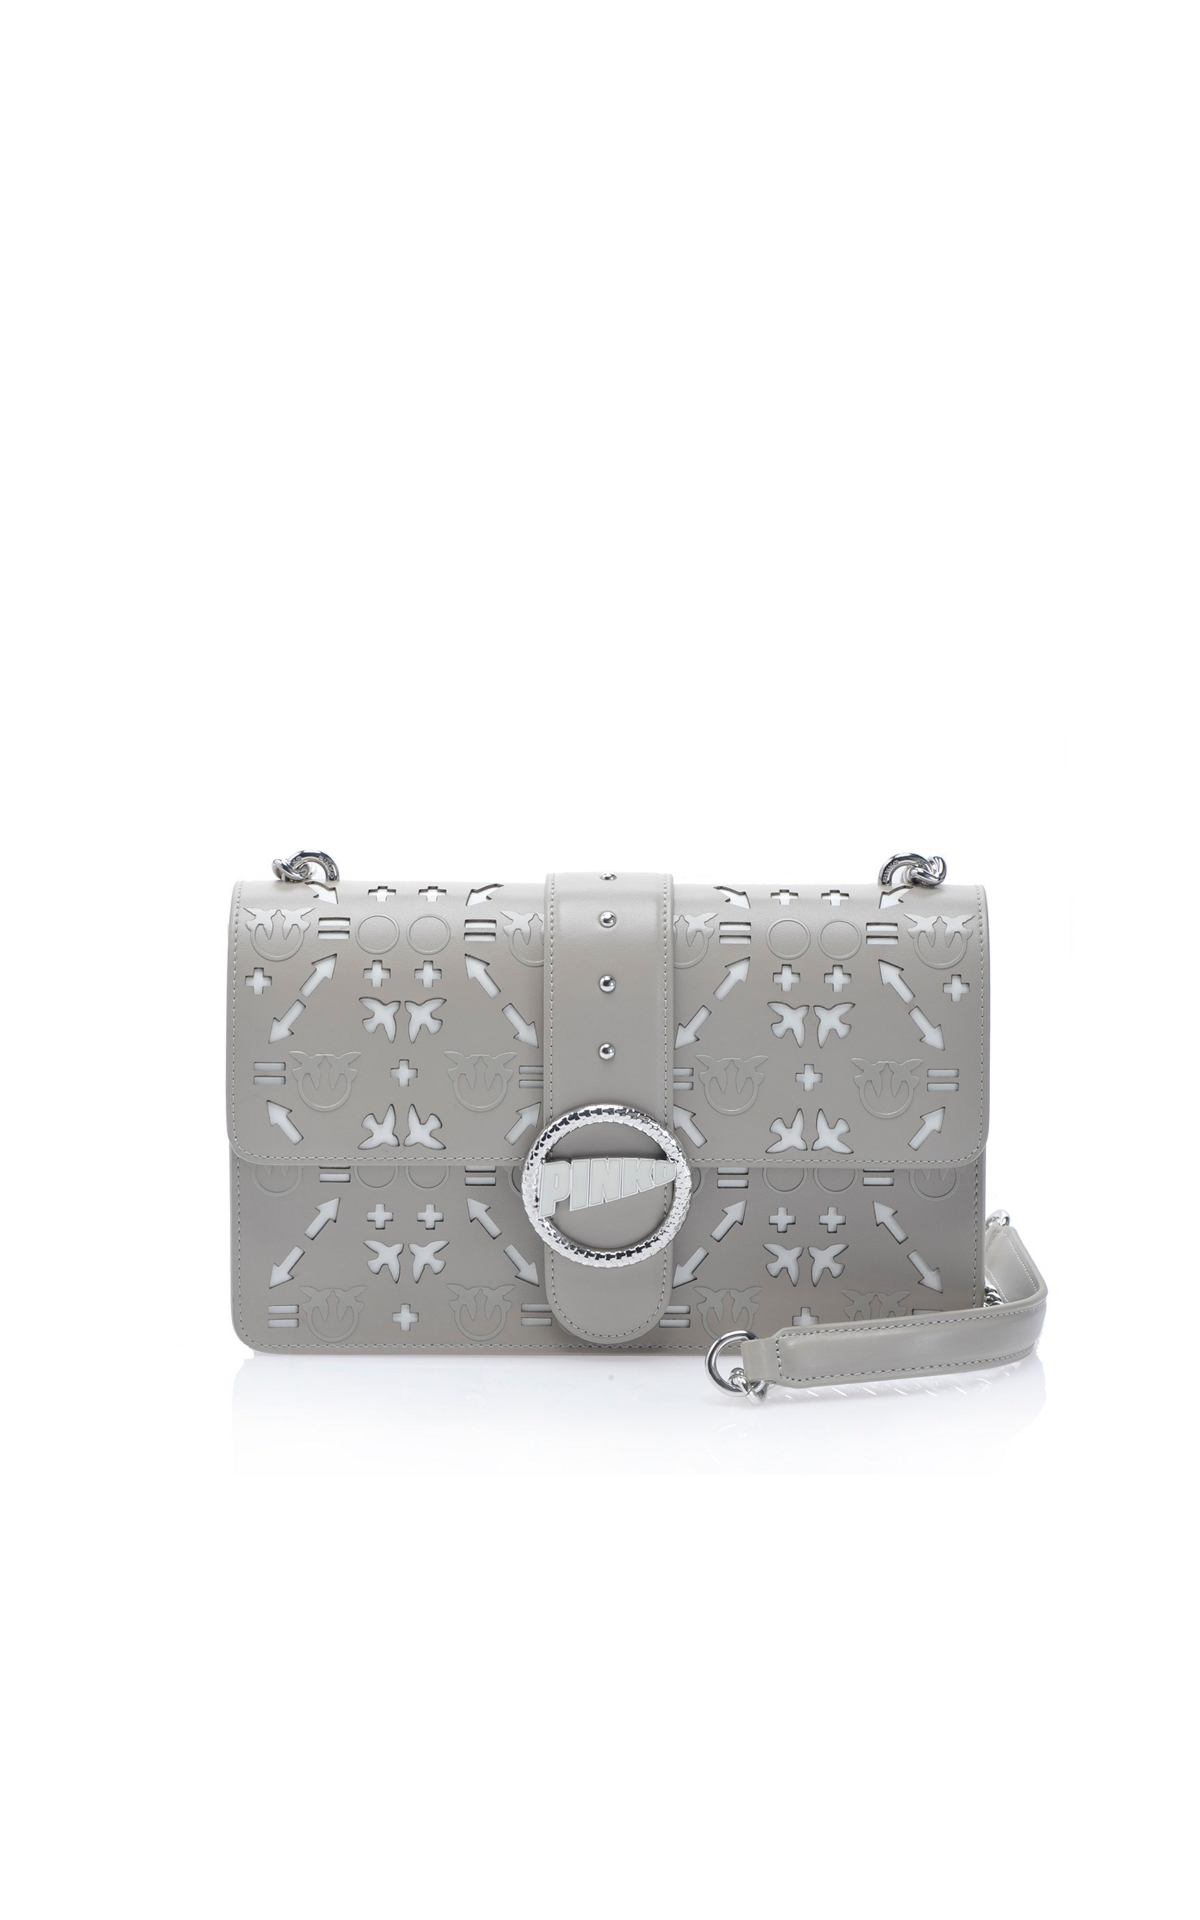 Laser cut leather grey bag Pinko